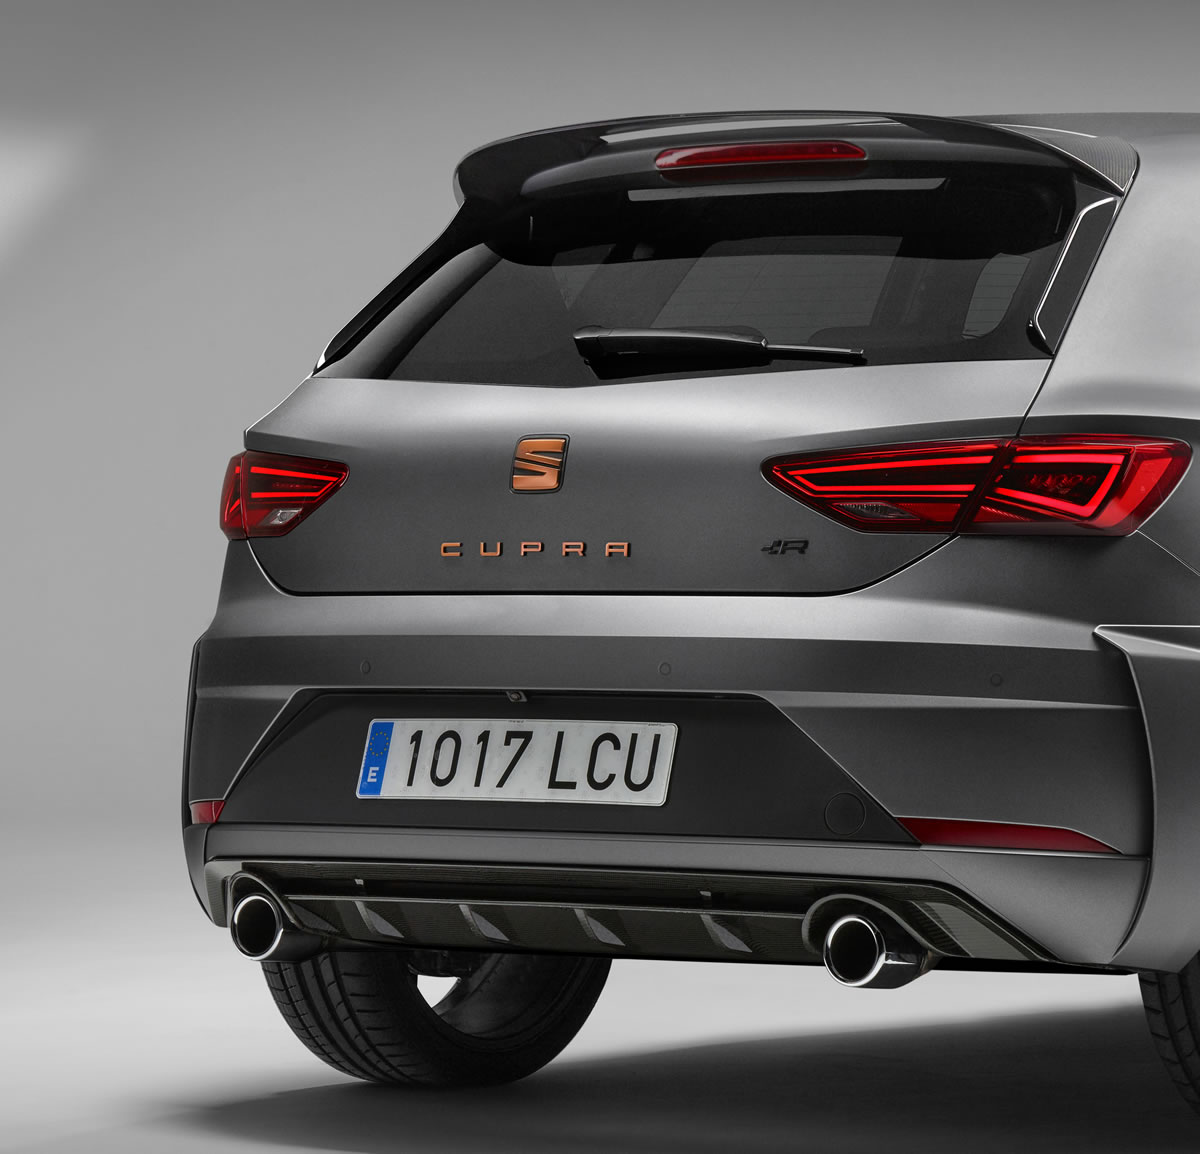 2017 Limited Edition Seat Leon Cupra R Revealed